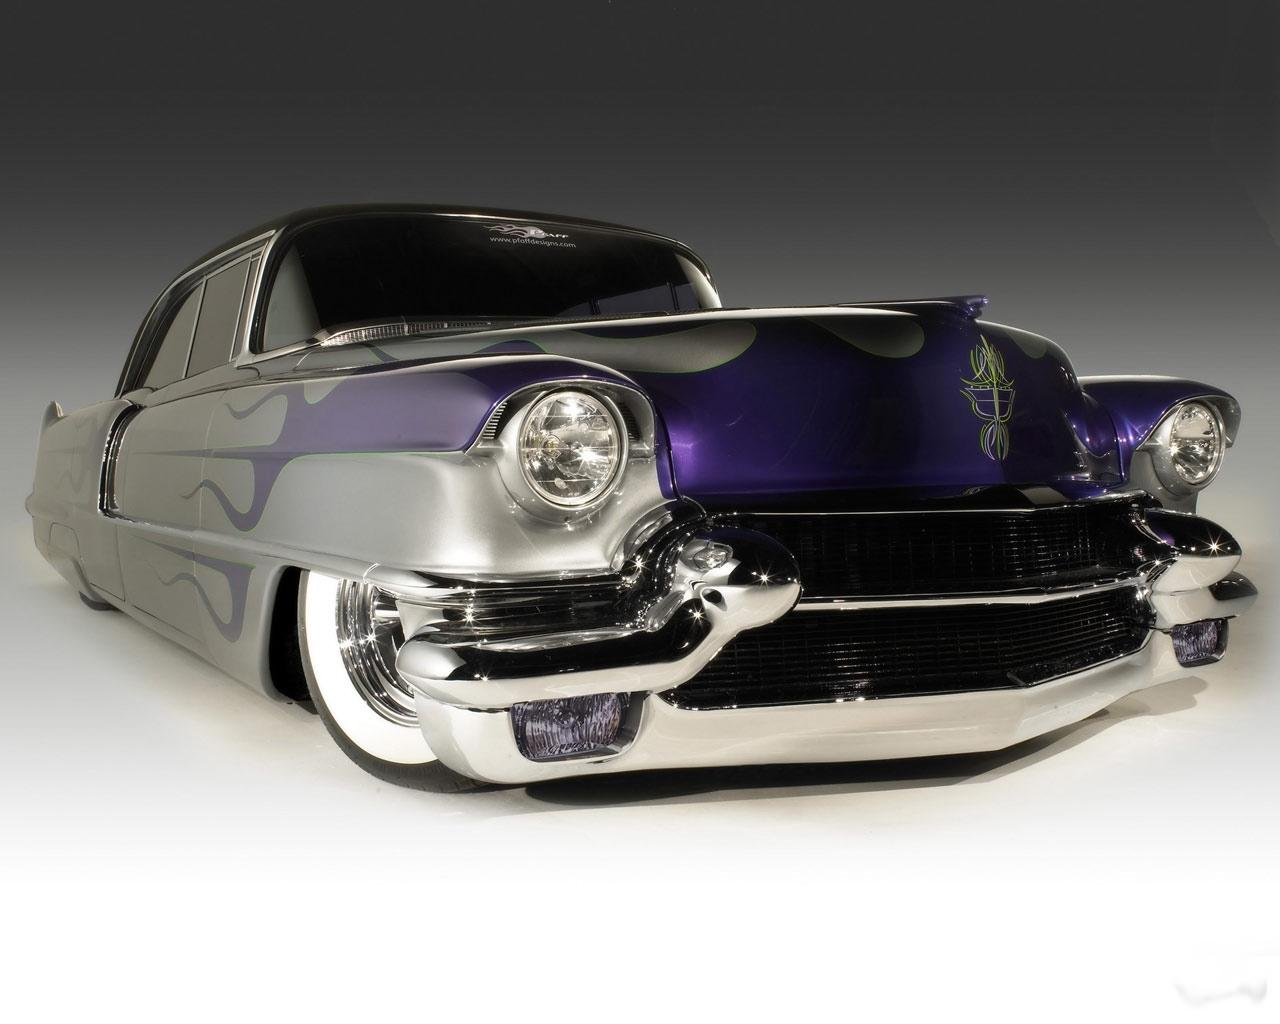 Resultados da Pesquisa de imagens do Google para http://www.firstpicture.net/wp-content/gallery/old-cars/Old-Cars-16.jpg